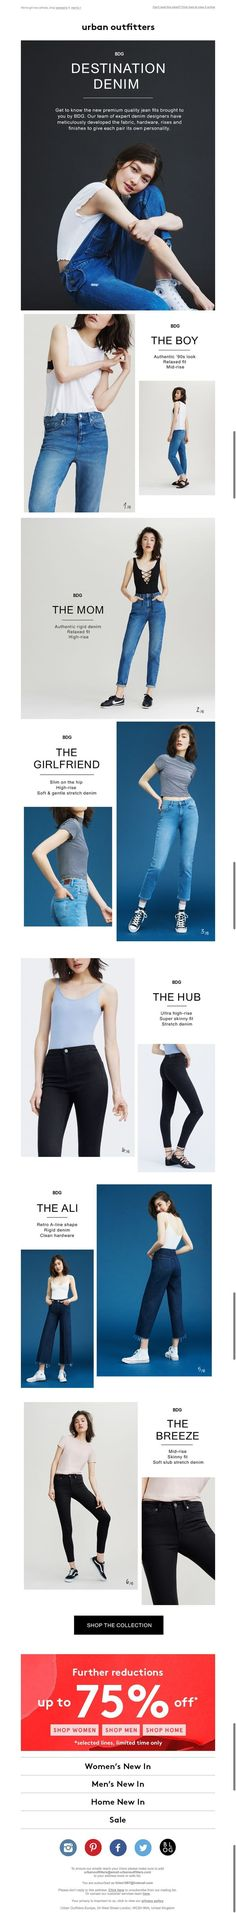 follow me @cushite denim email from urban outfitters